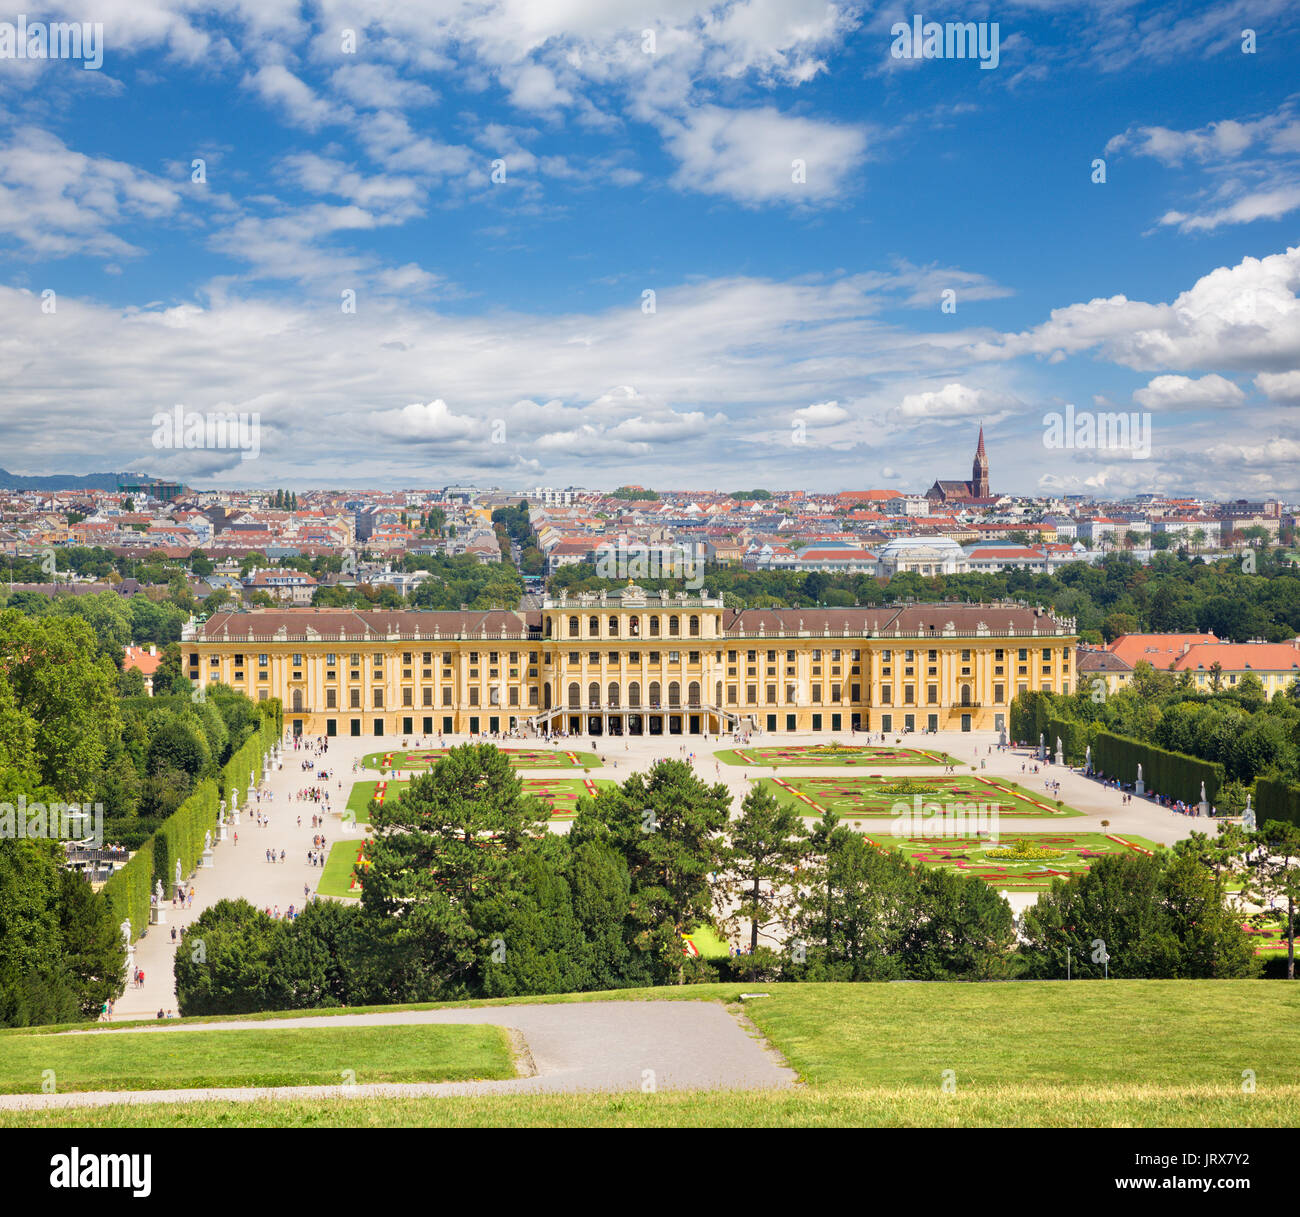 Vienna - The Schonbrunn palace and the gardens and park. - Stock Image